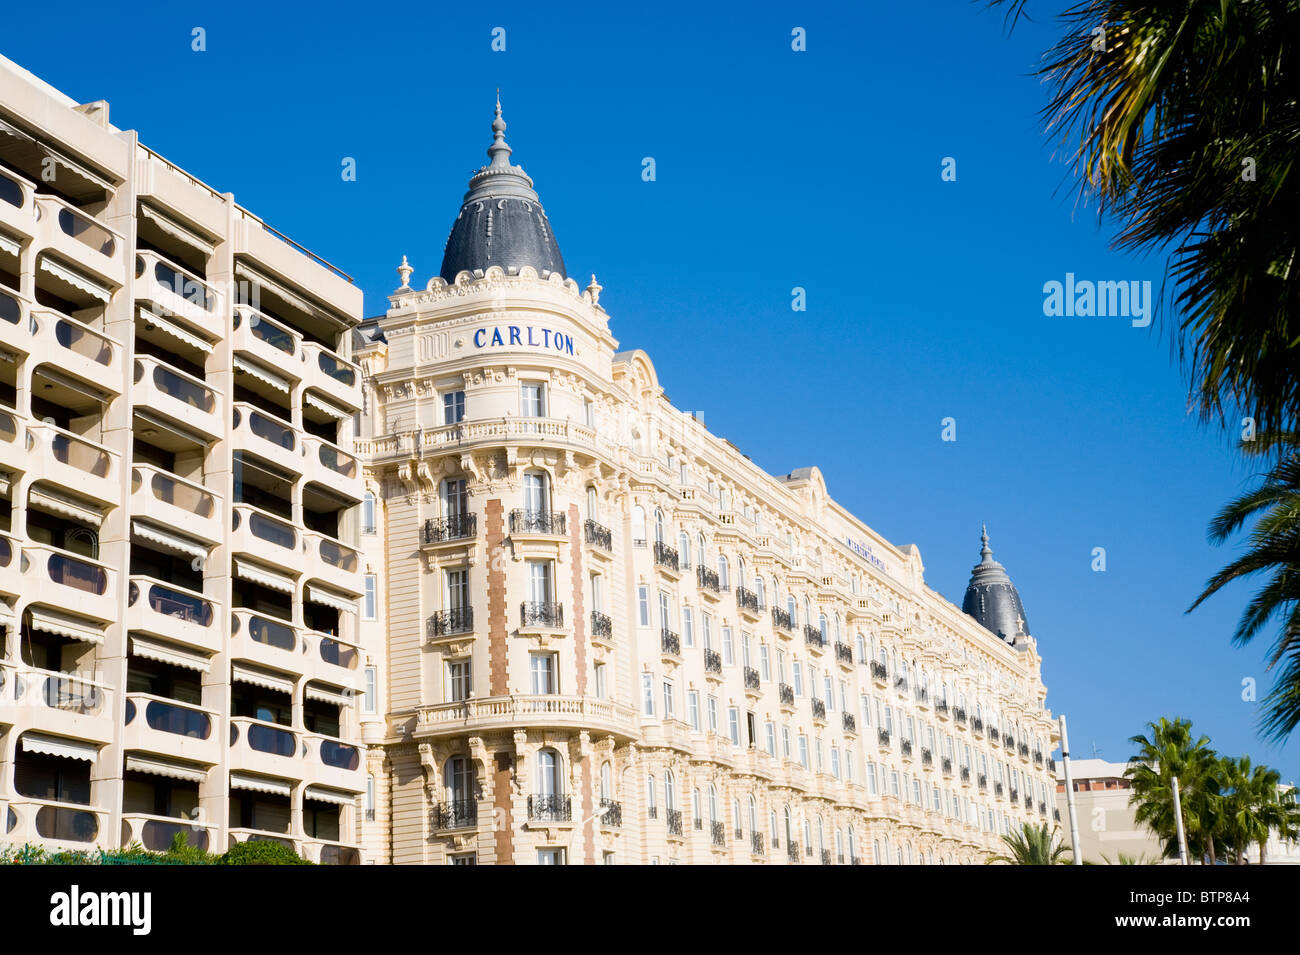 carlton hotel cannes cote d 39 azur france stock photo. Black Bedroom Furniture Sets. Home Design Ideas